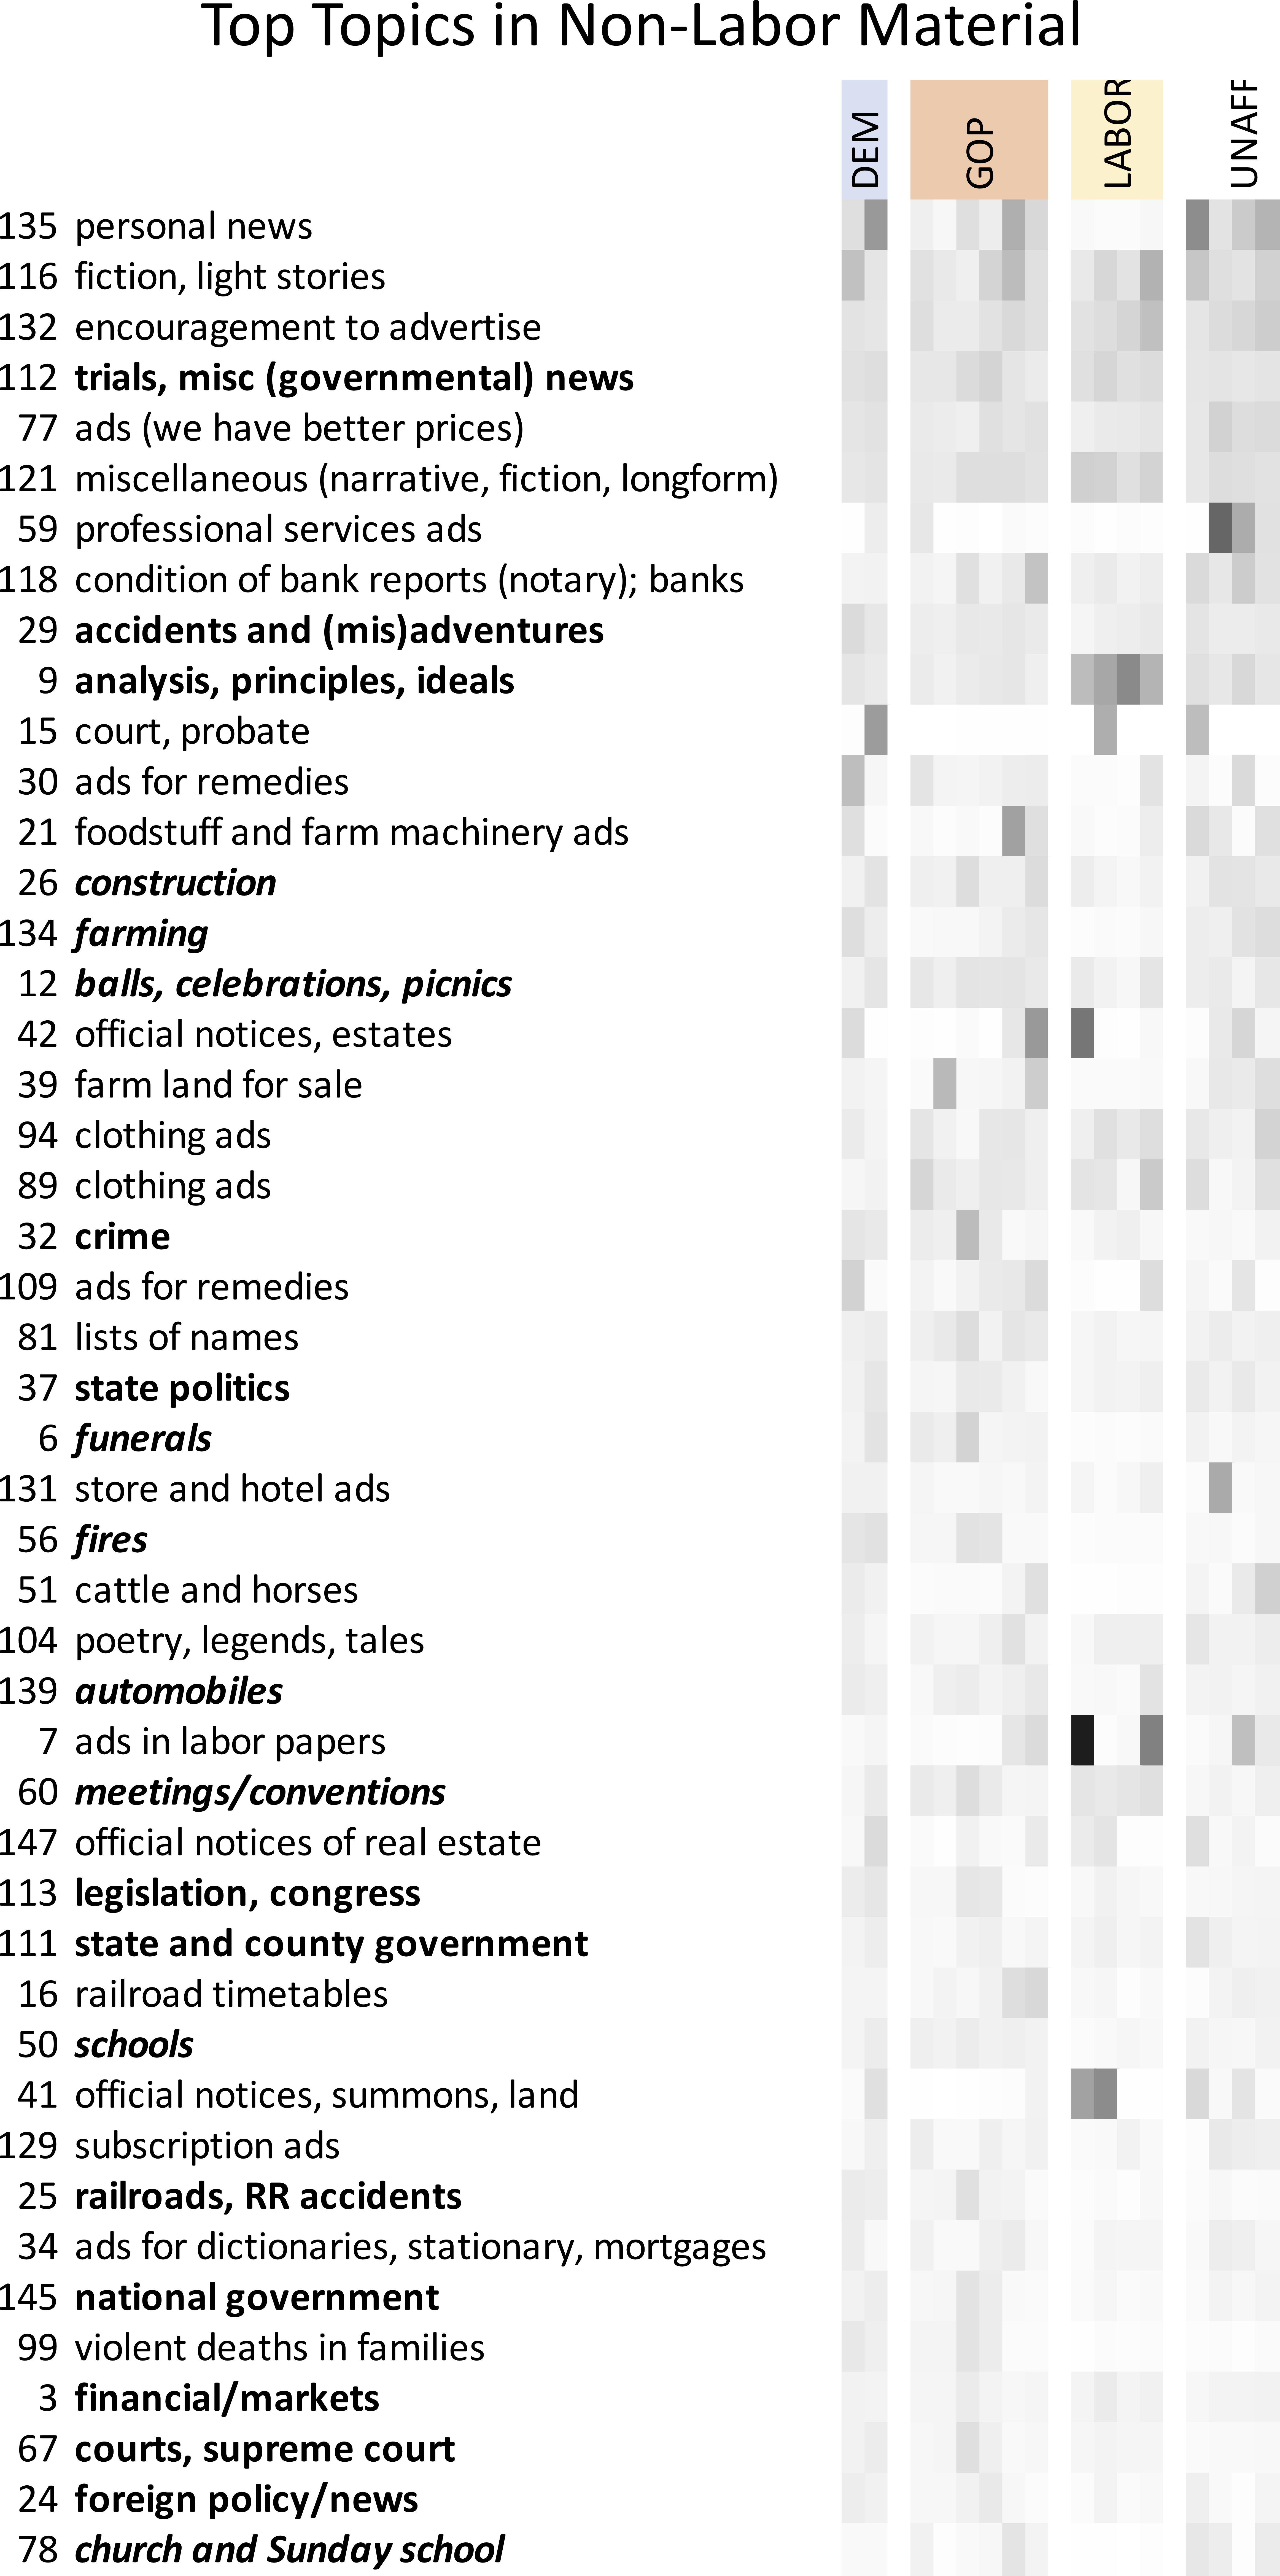 Heat map showing the topics most prominent in non-labor materials.